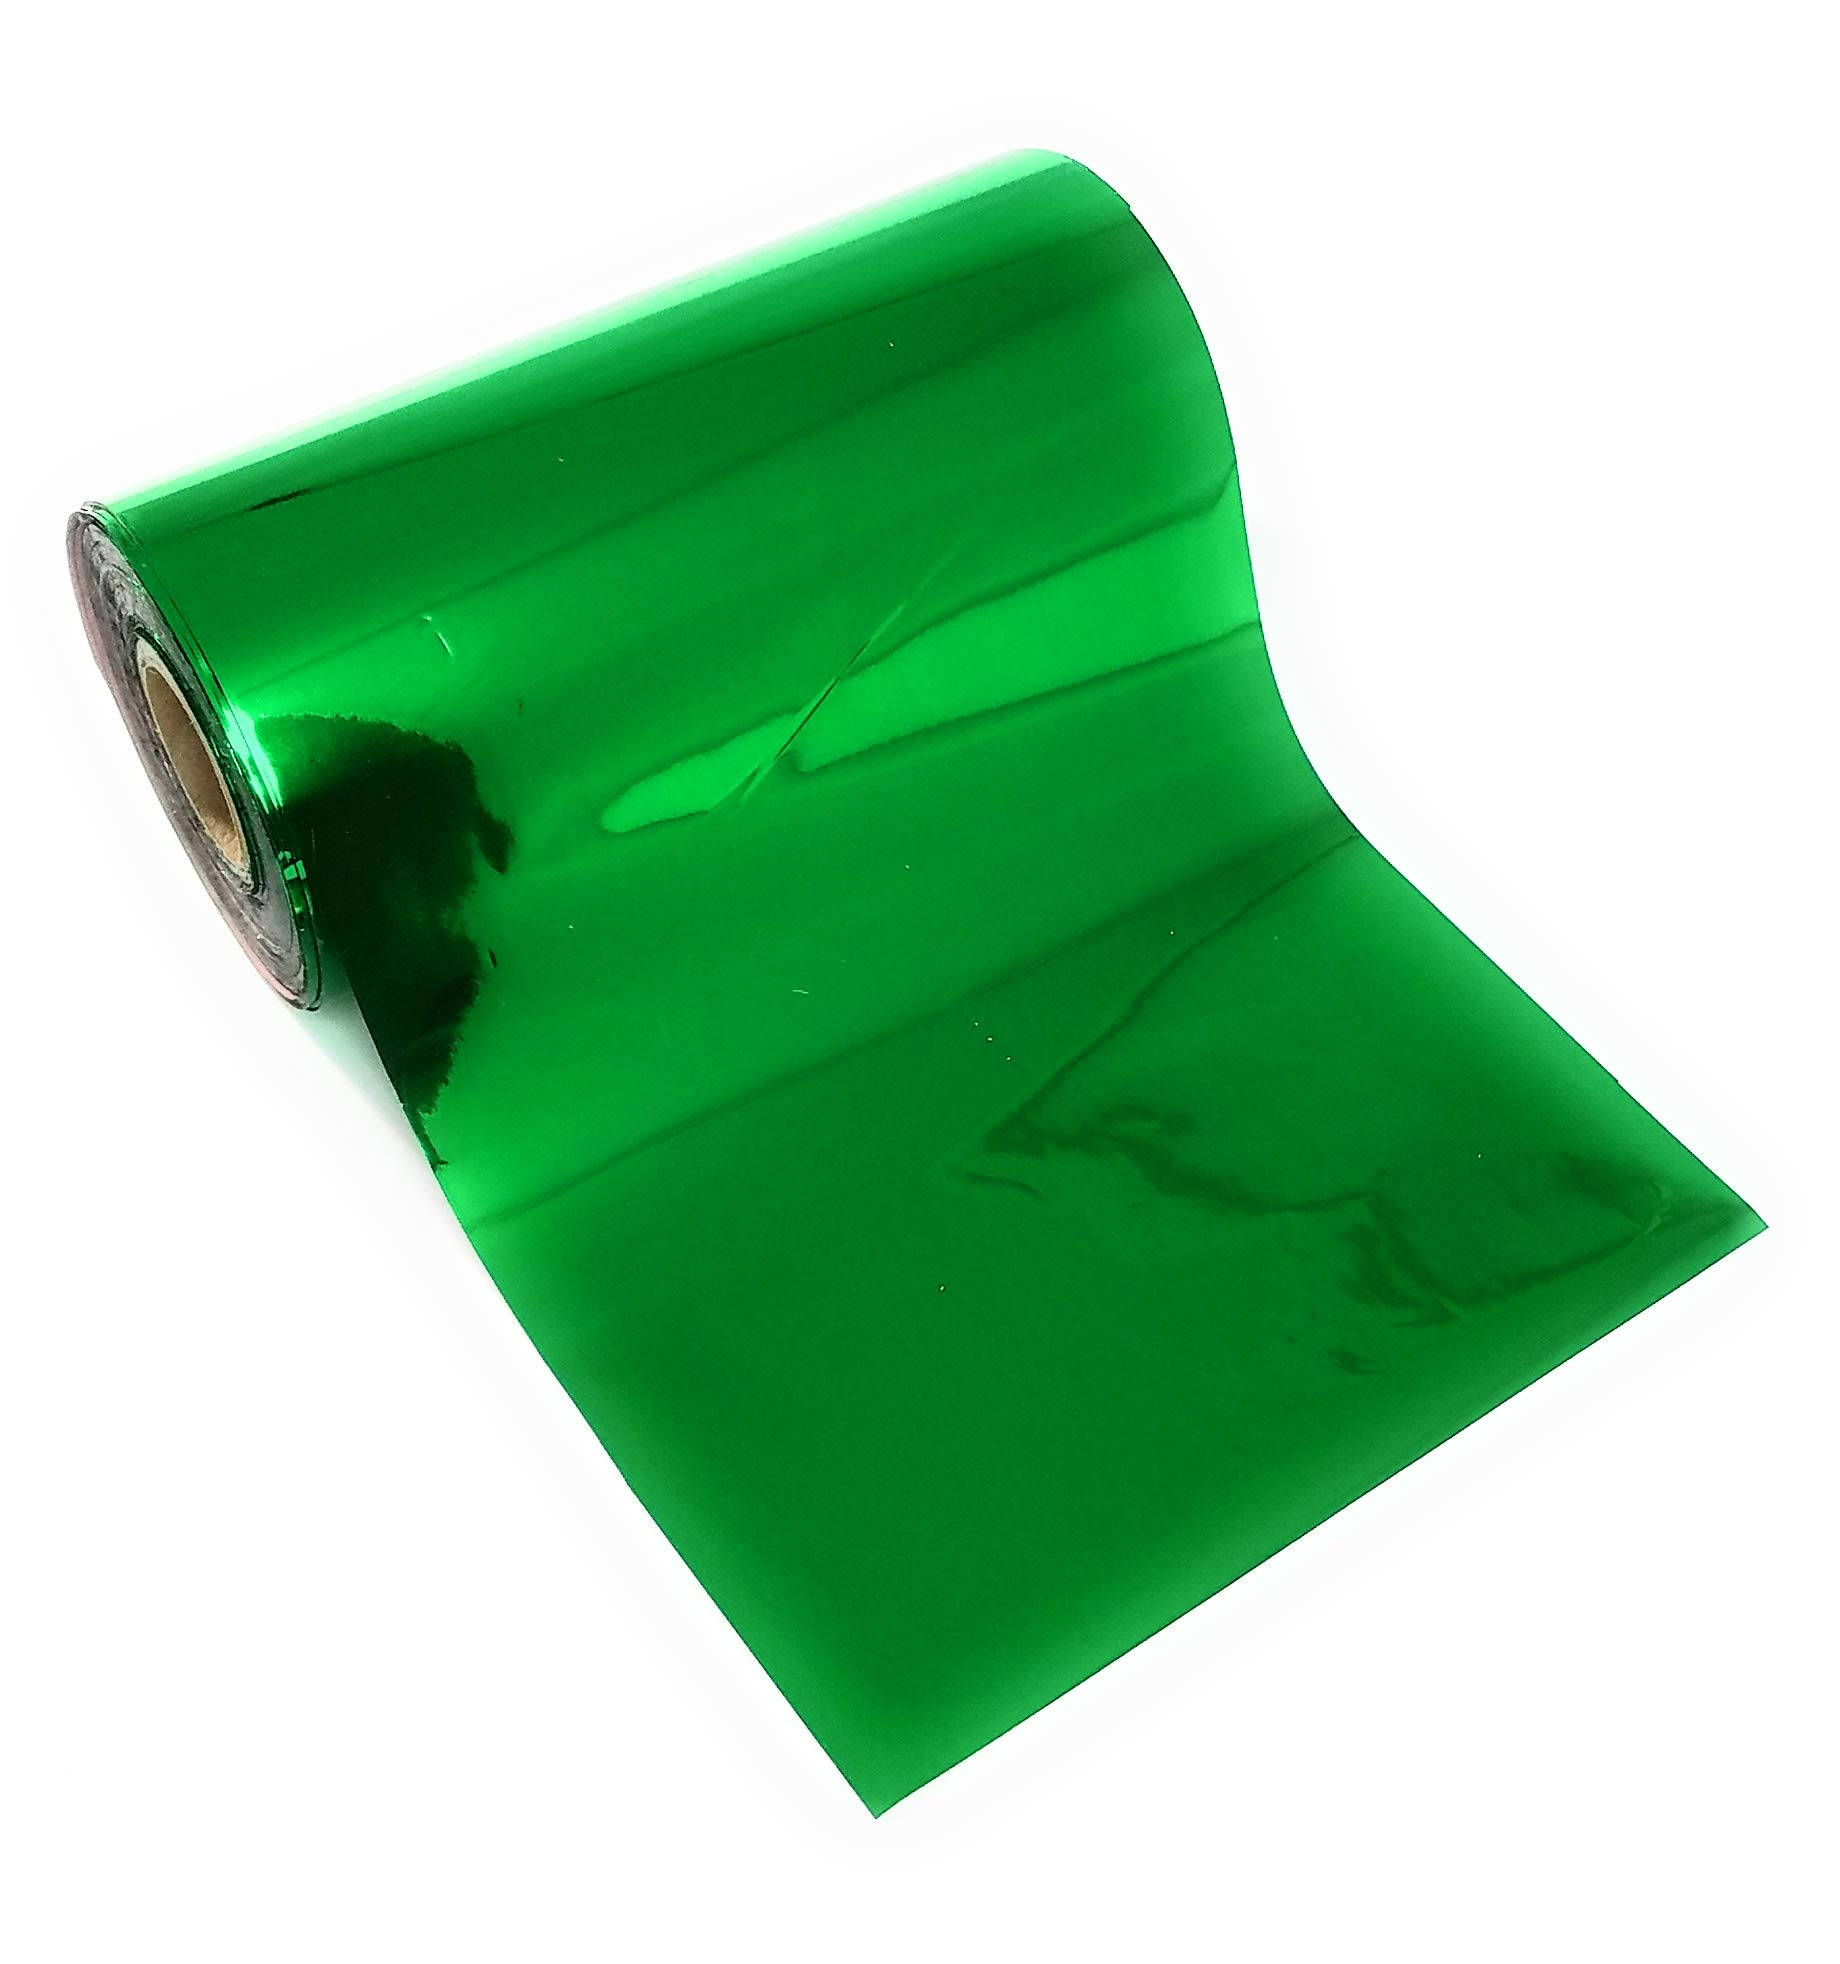 Green Bright Metallic Hot Stamping Craft Foil by Morfcraft (Image #2)